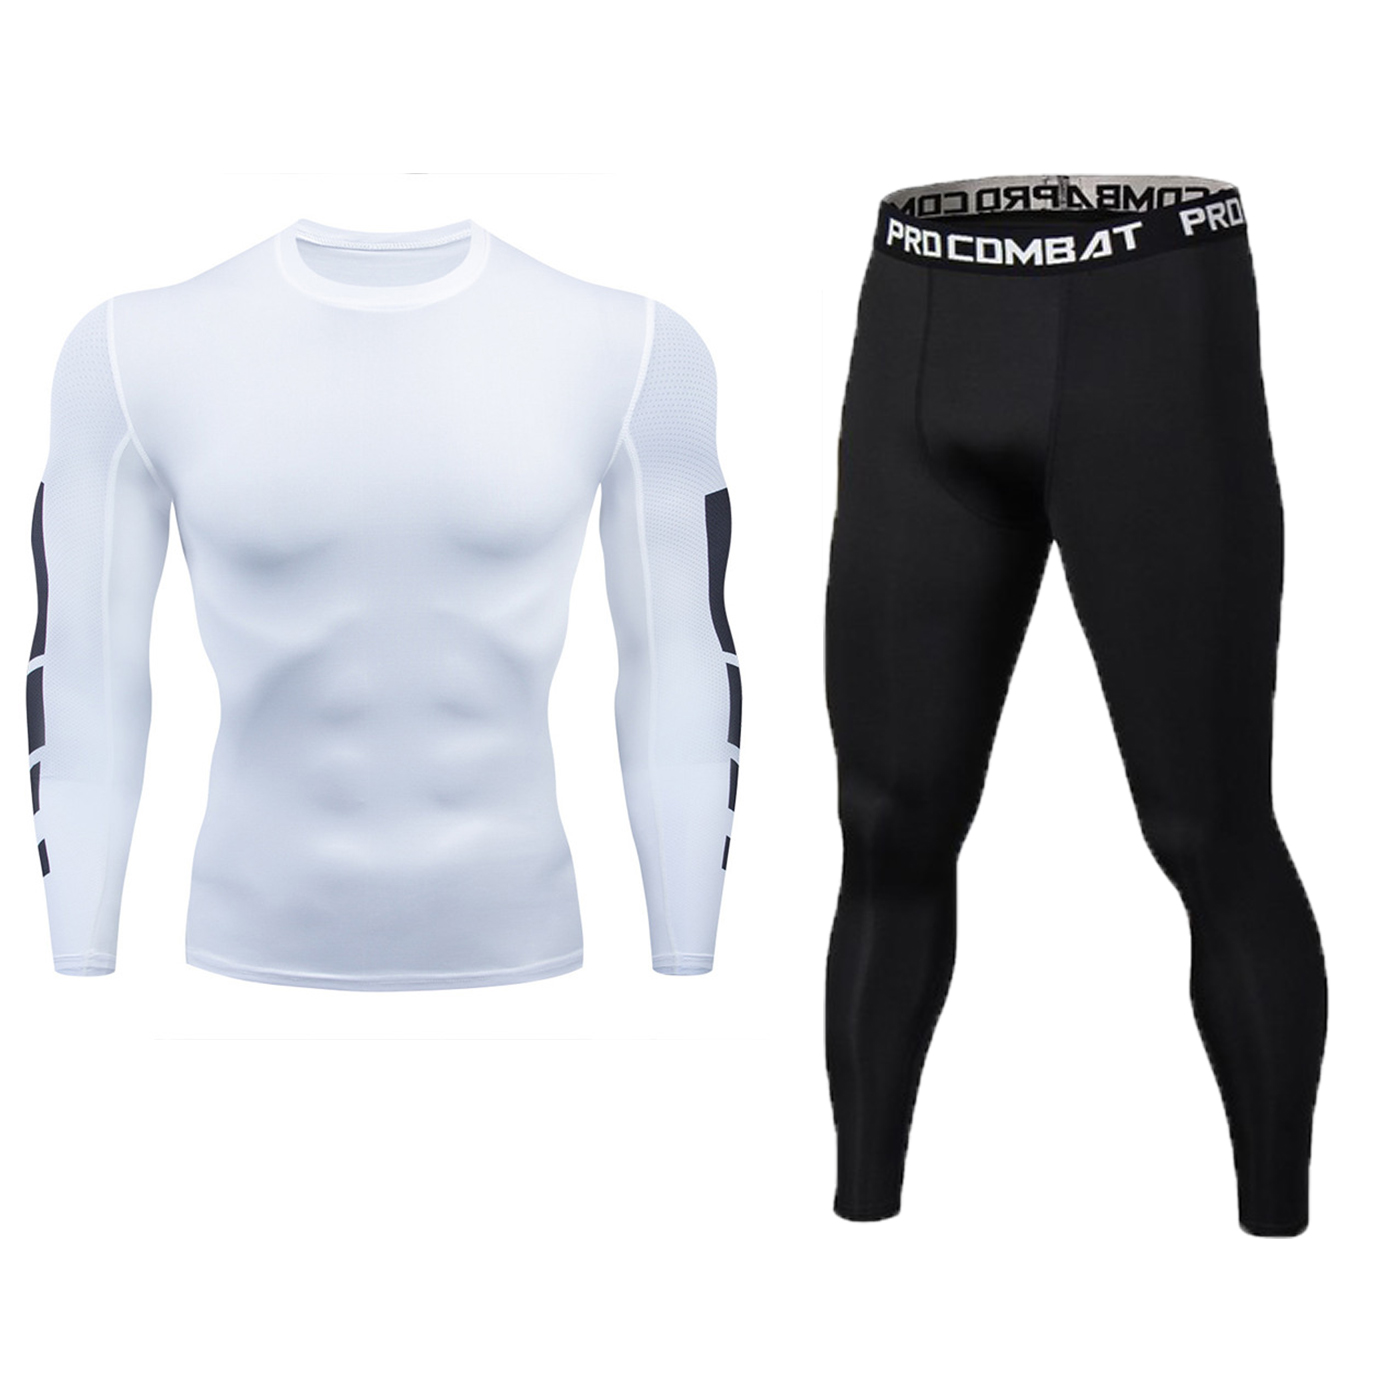 2 Pieces / Set Compression Men's Sports Suit Quick-drying Running Suit Long Sleeve Clothes Training Gym Fitness Sportswear Sport